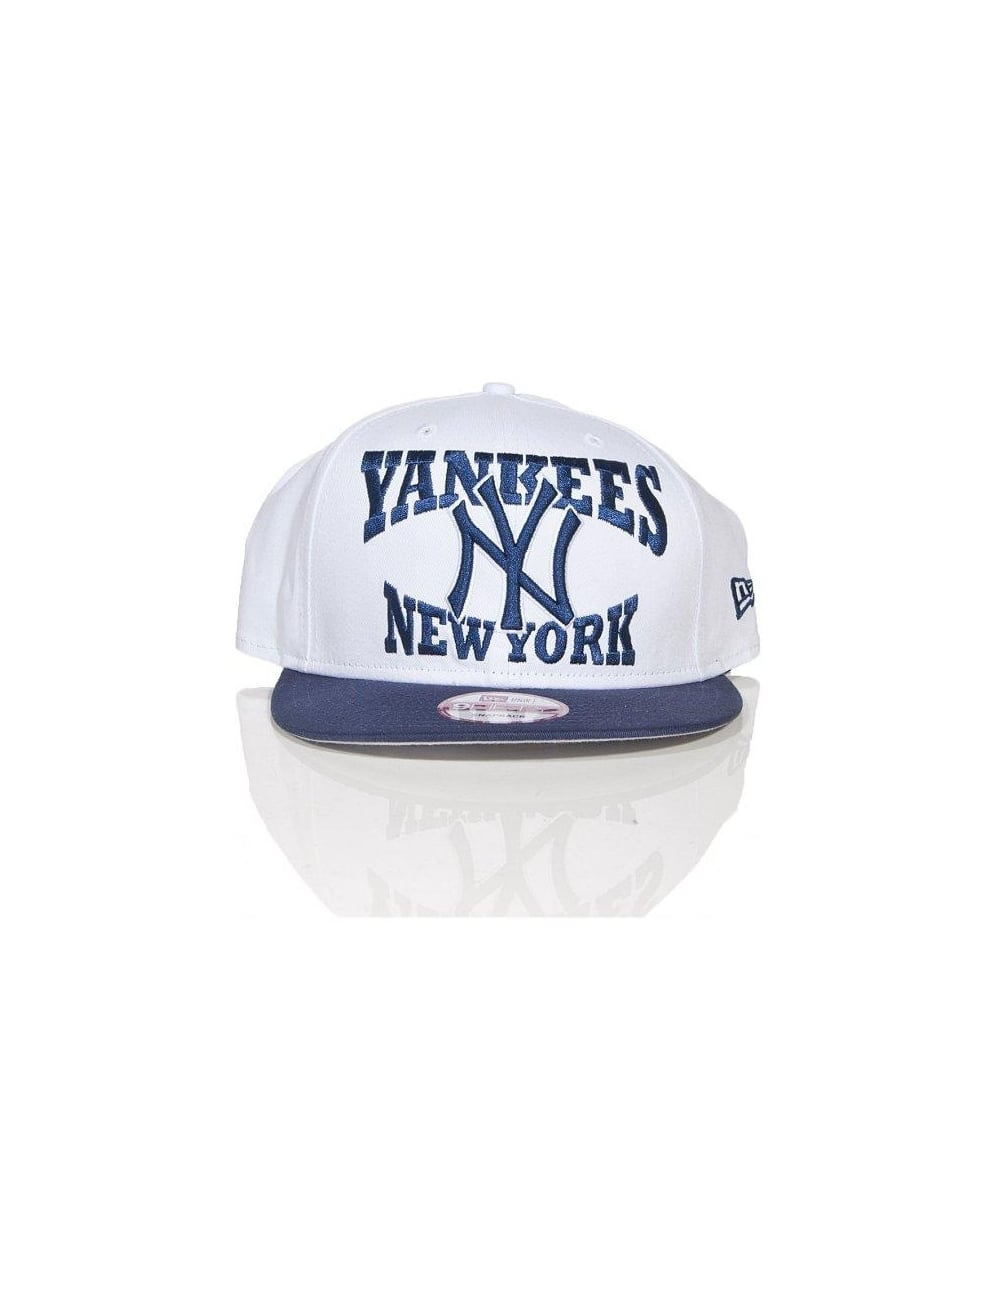 New Era 9Fifty - New York Yankees - White Blue - Hat Shop from Fat ... 57994ee5b3586